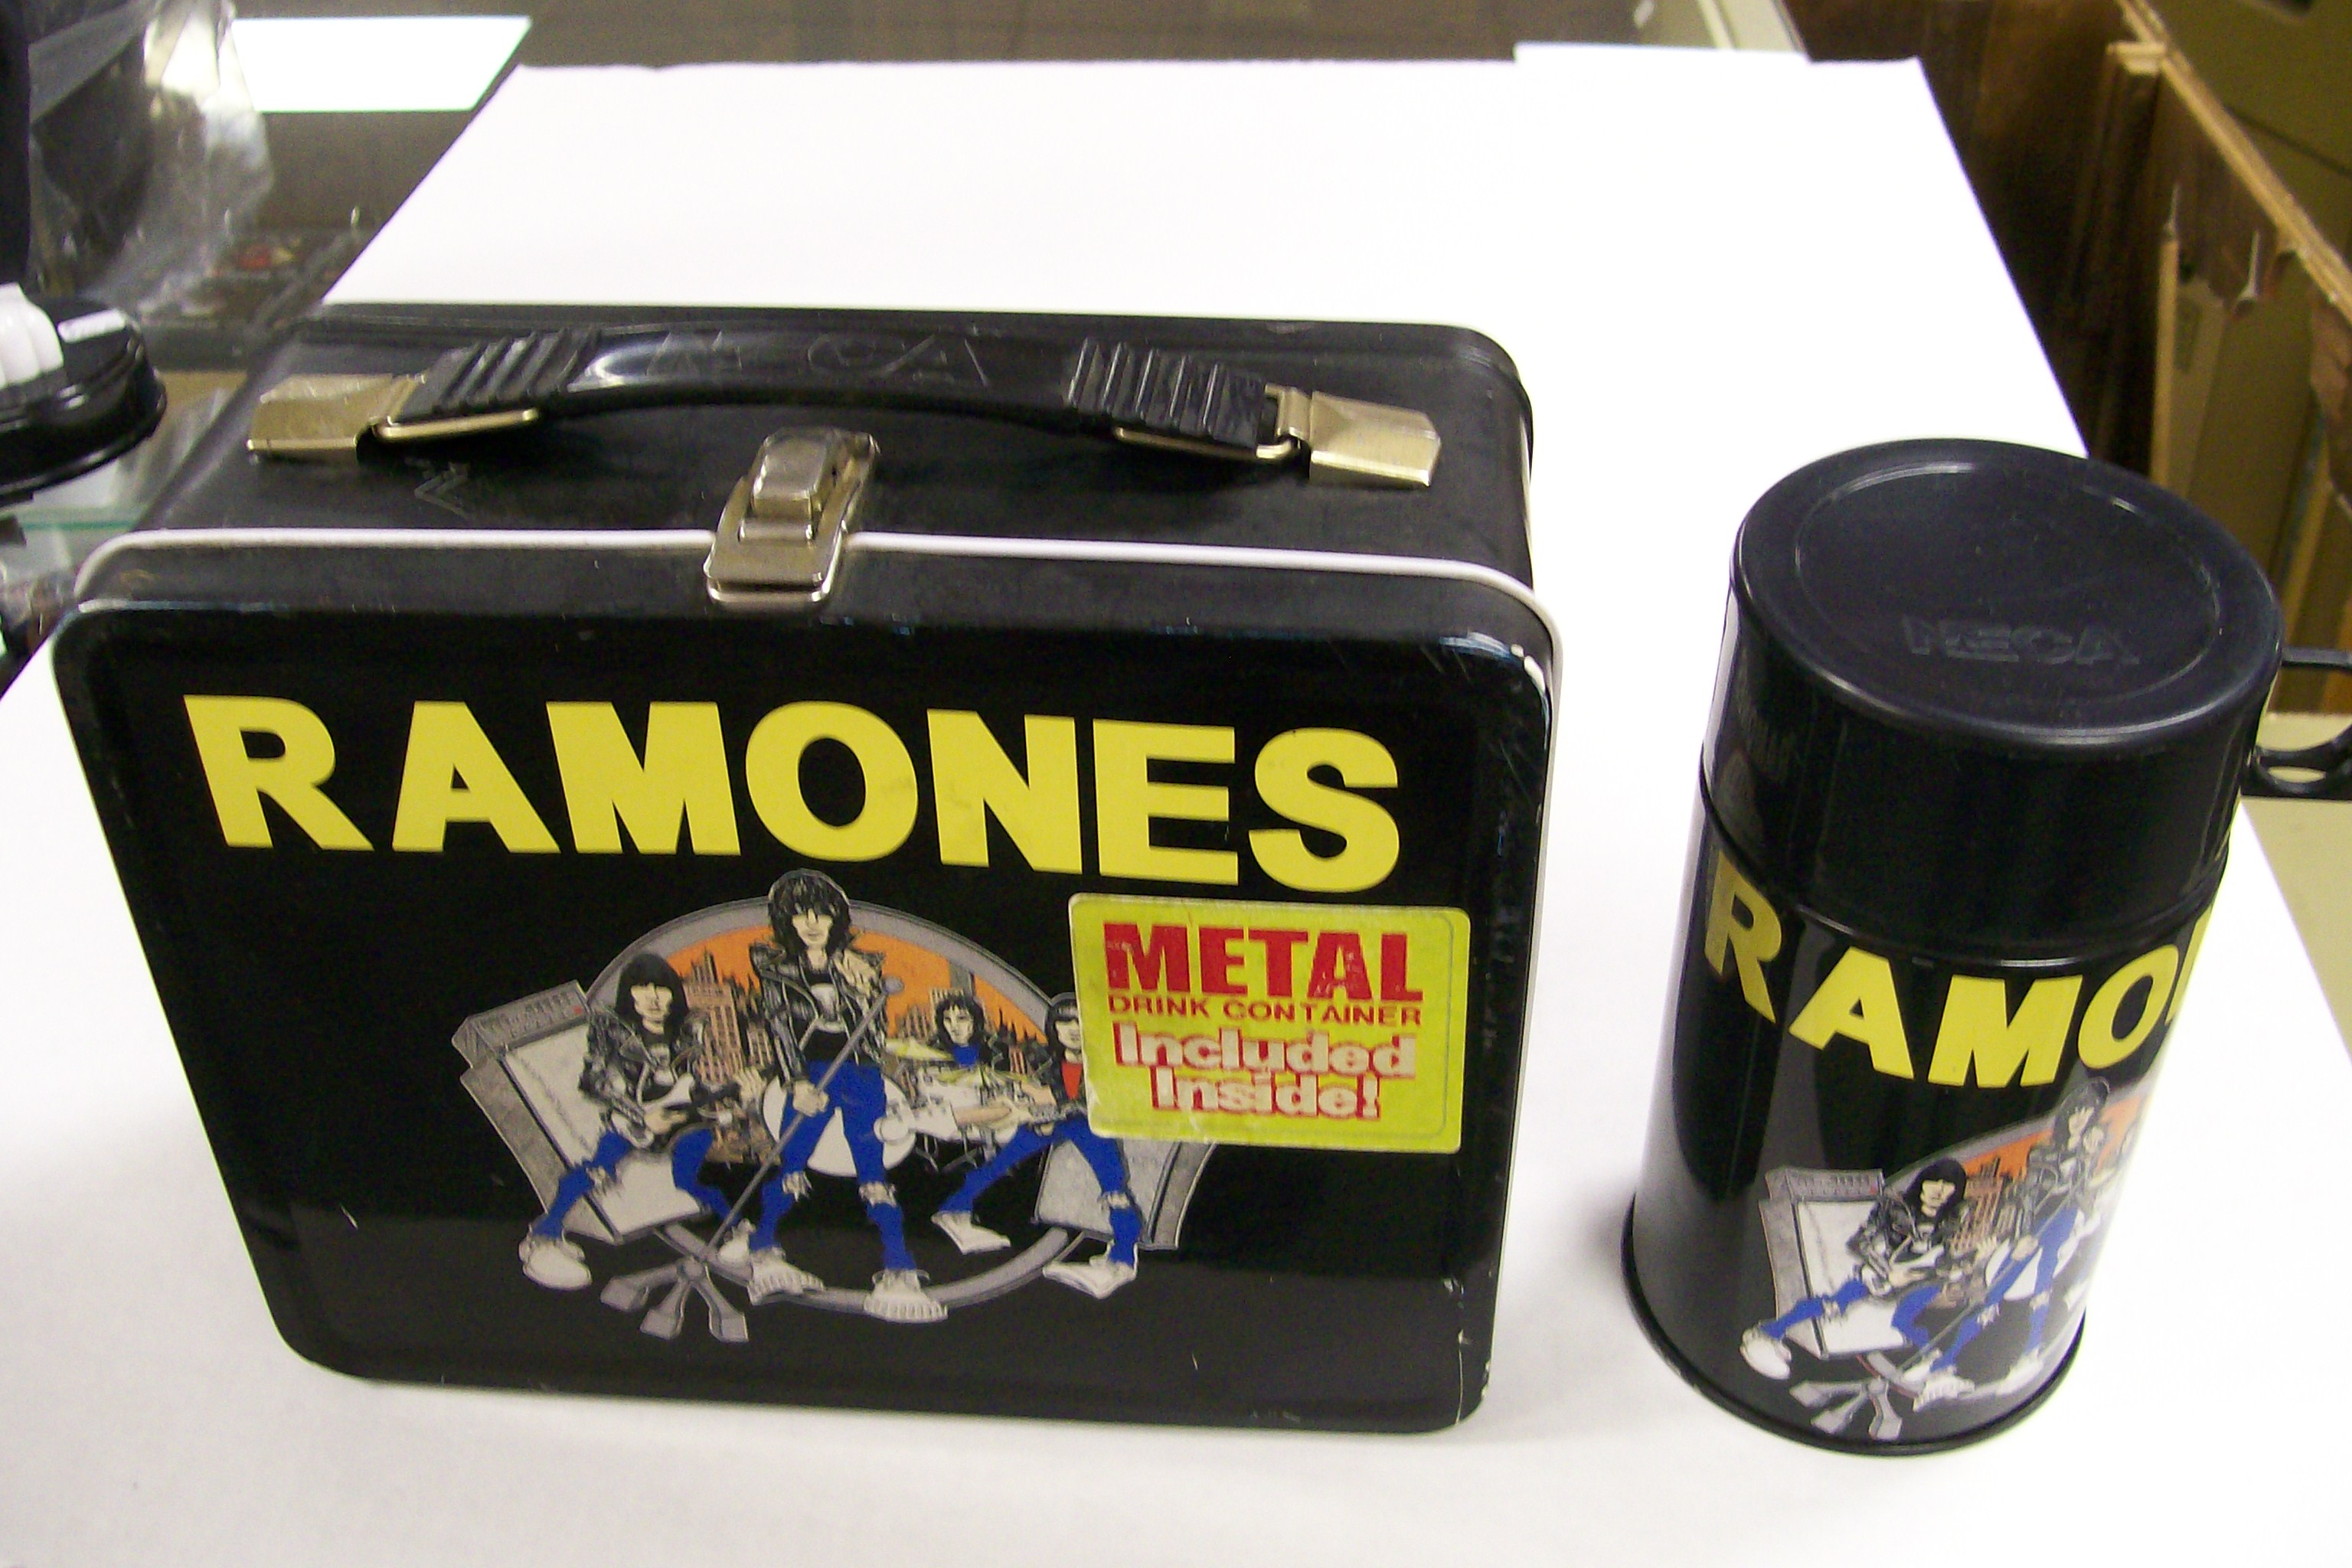 Ramones Metal Lunch Box wiith Metal Drink Container